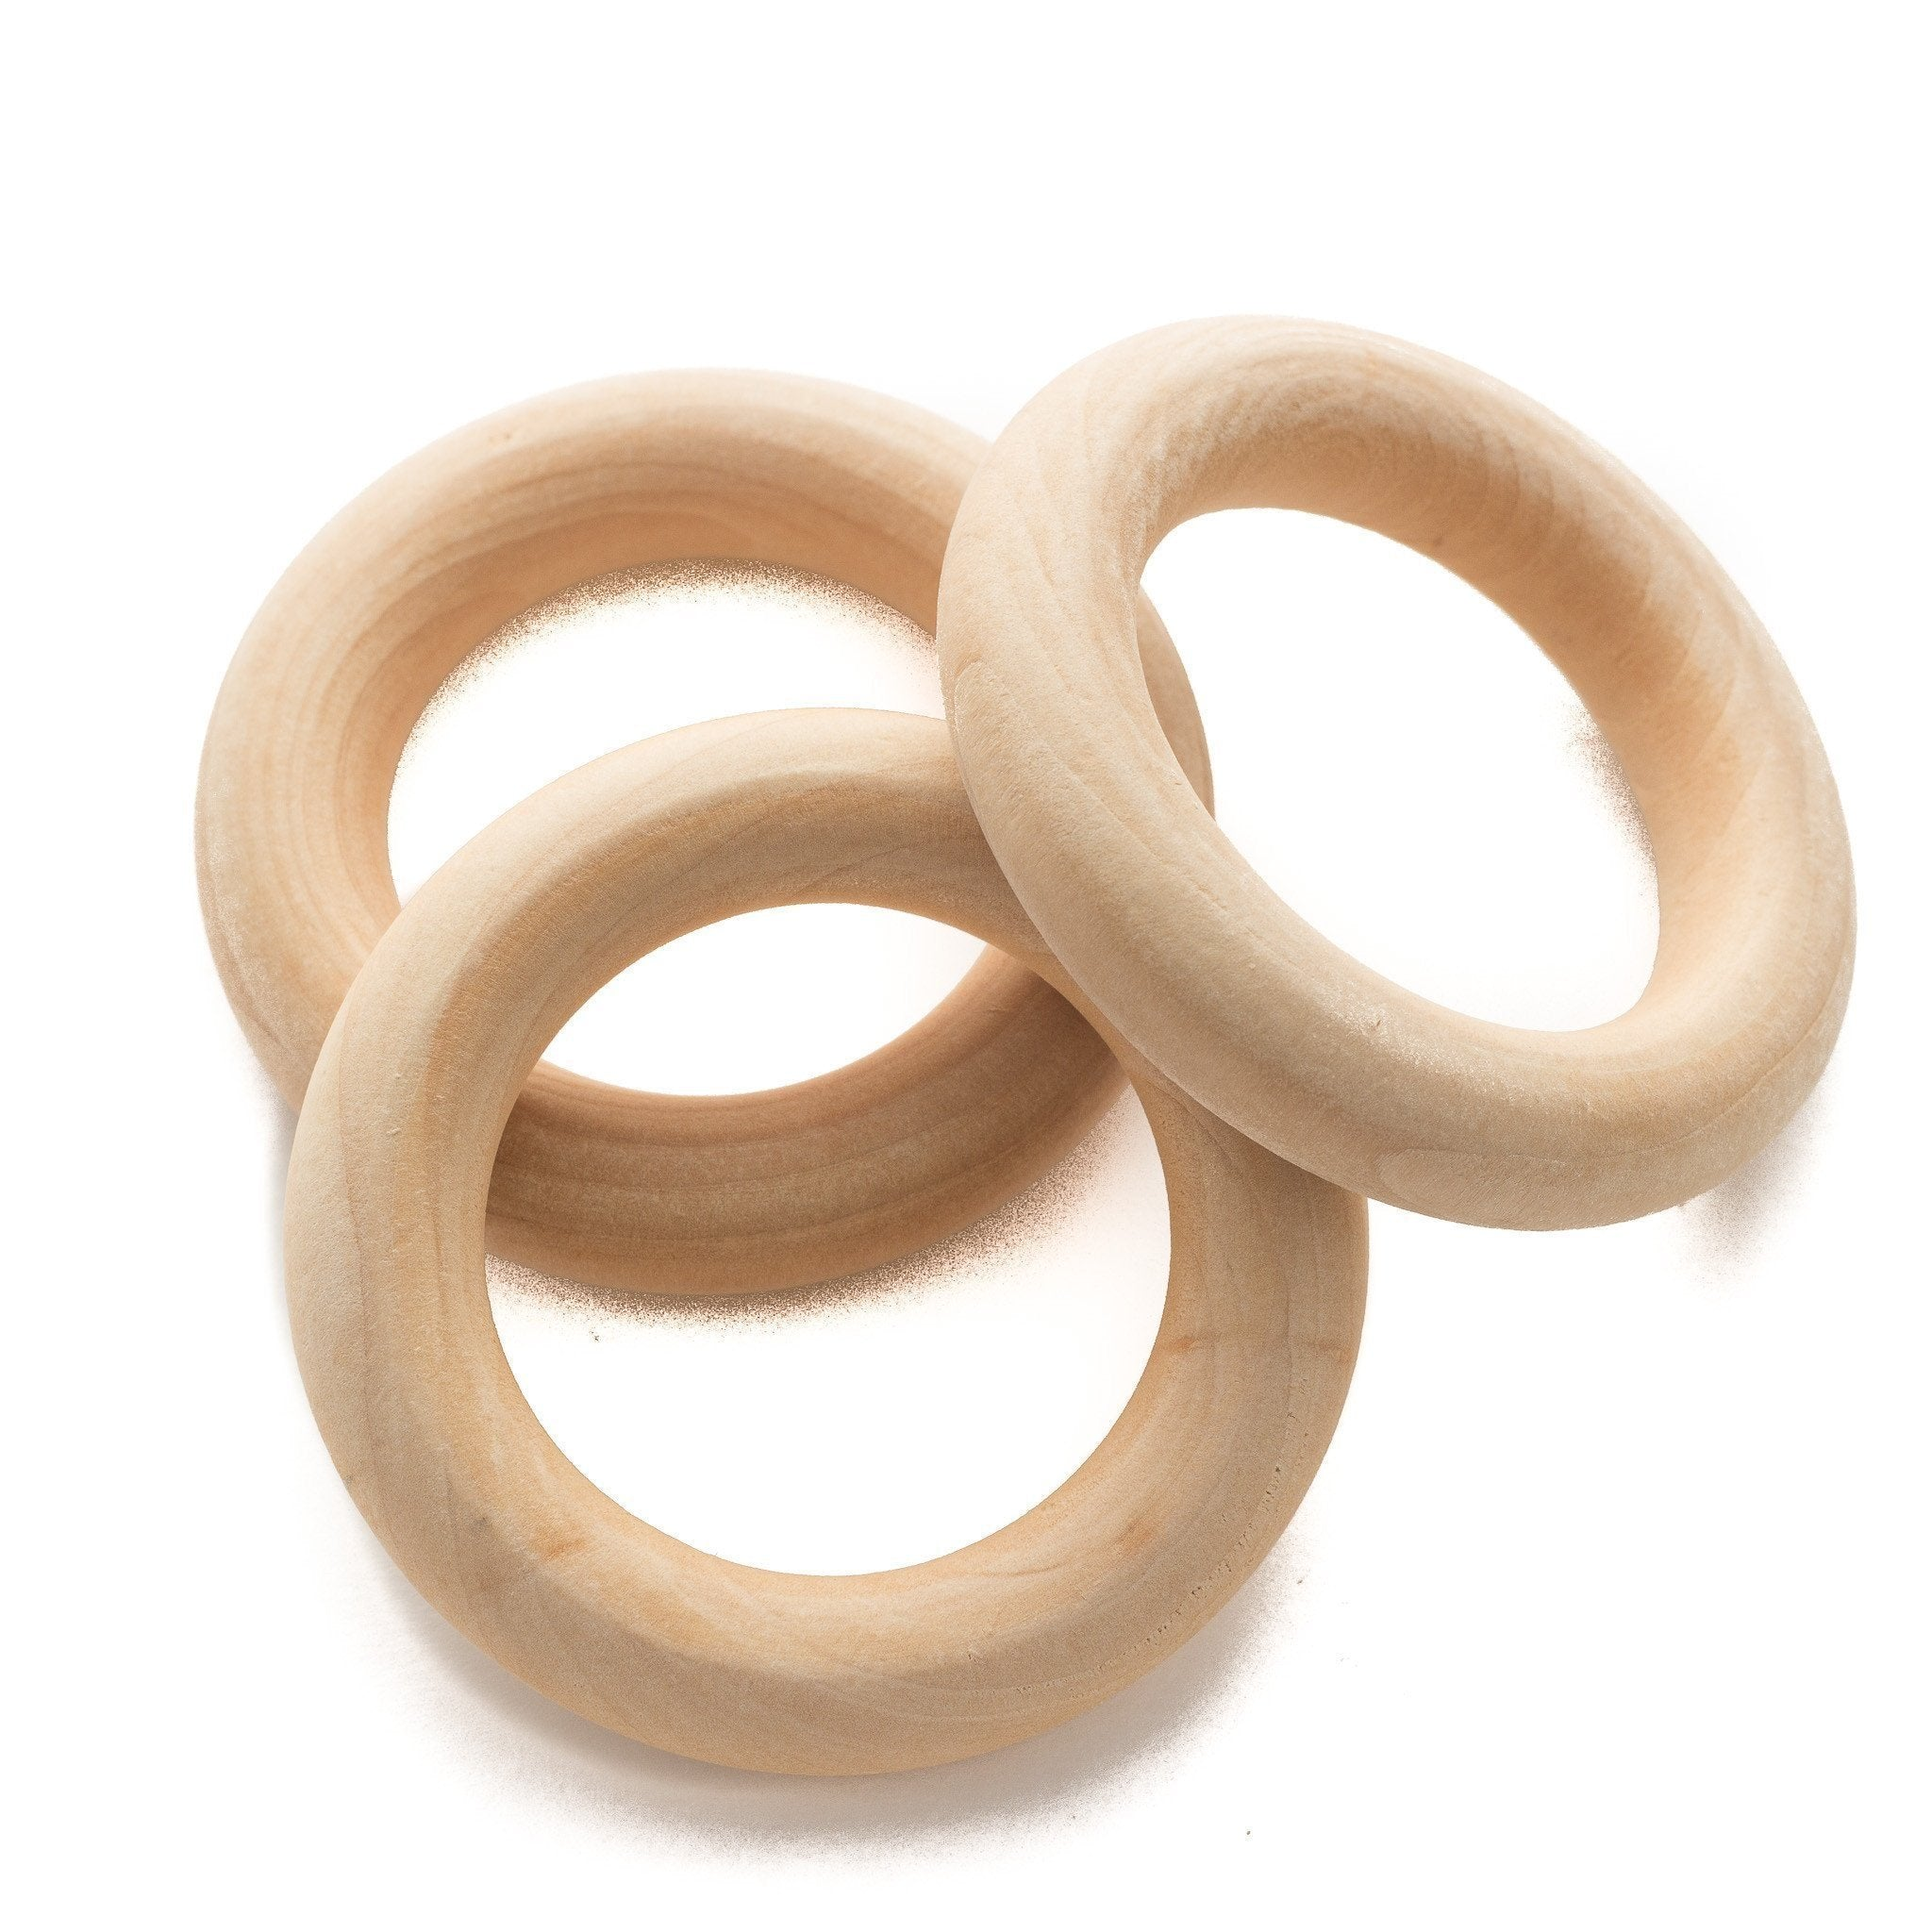 teething ring chicken dp co rings pet chew pack flavor amazon puppy supplies bone n uk